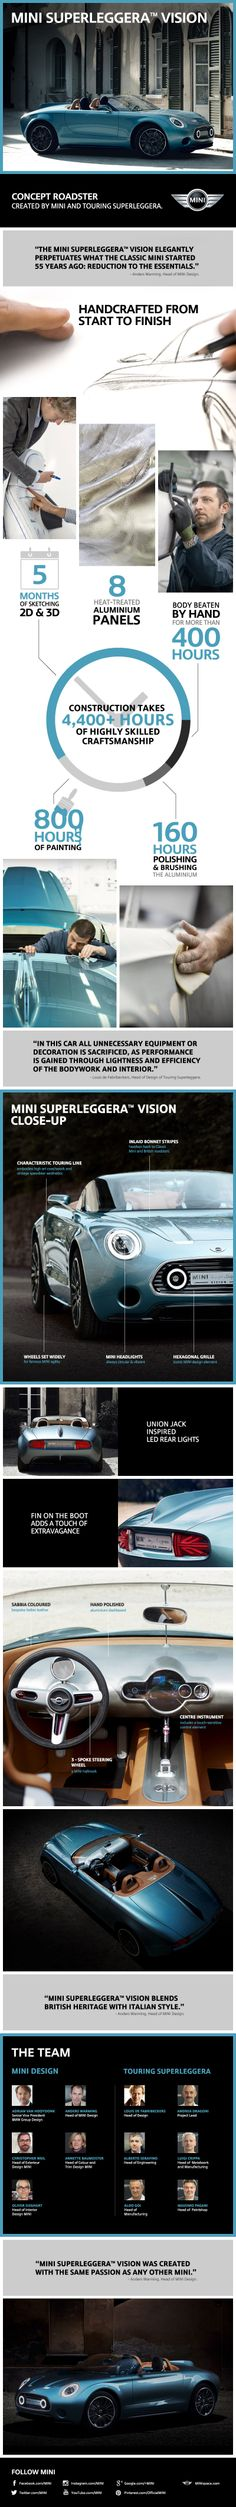 How to build a concept roadster by hand. Get the facts about MINI Superleggera™ Vision in this infographic.